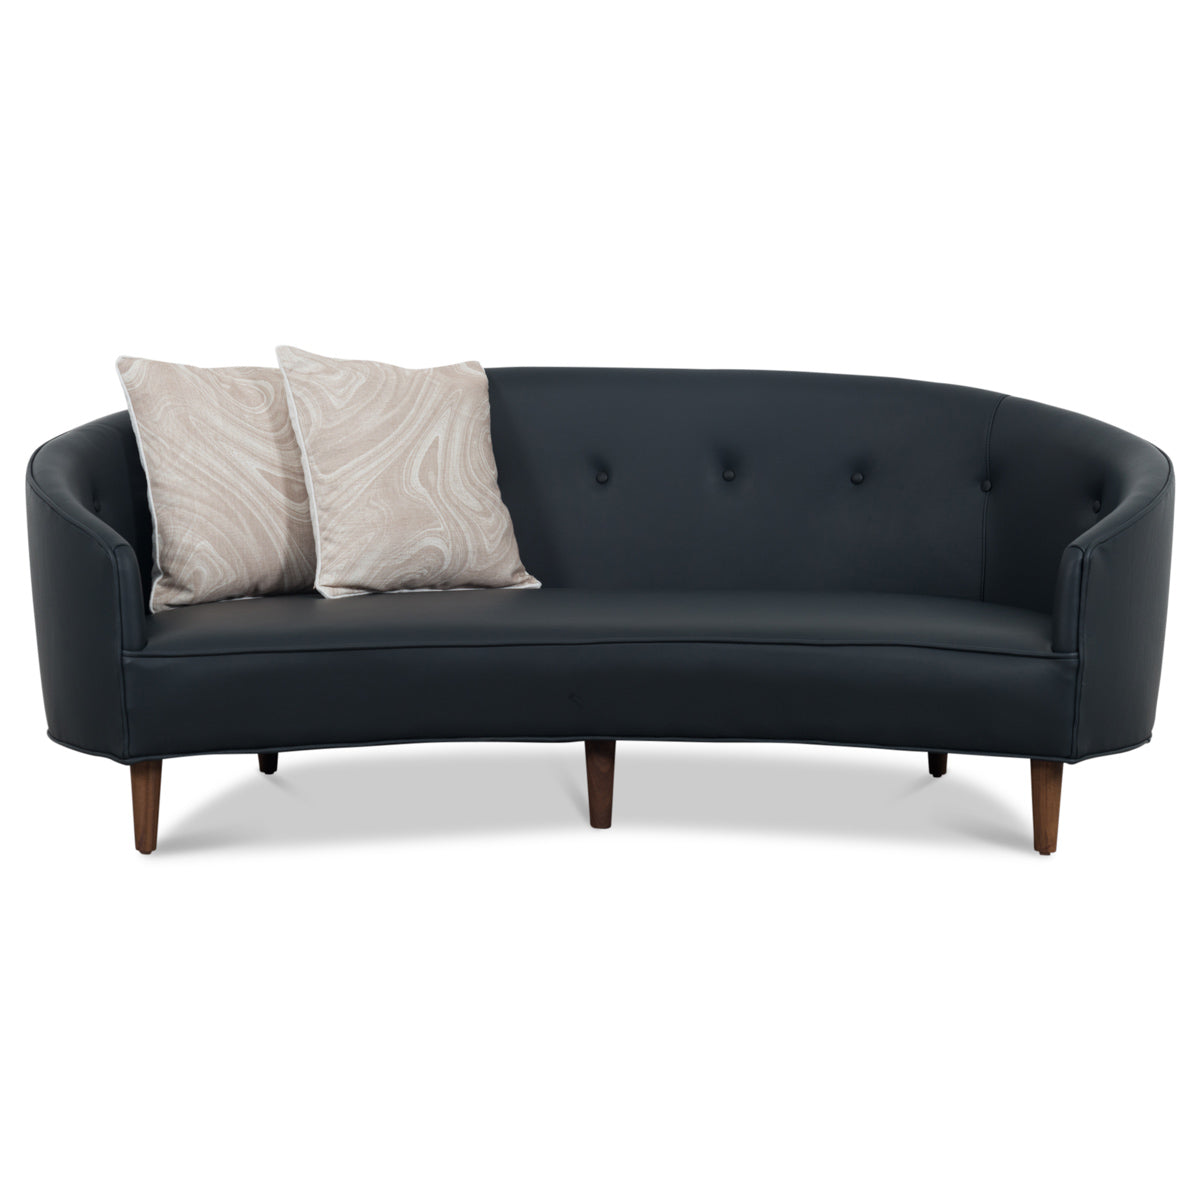 Art deco petite sofa in leather modshop1 com